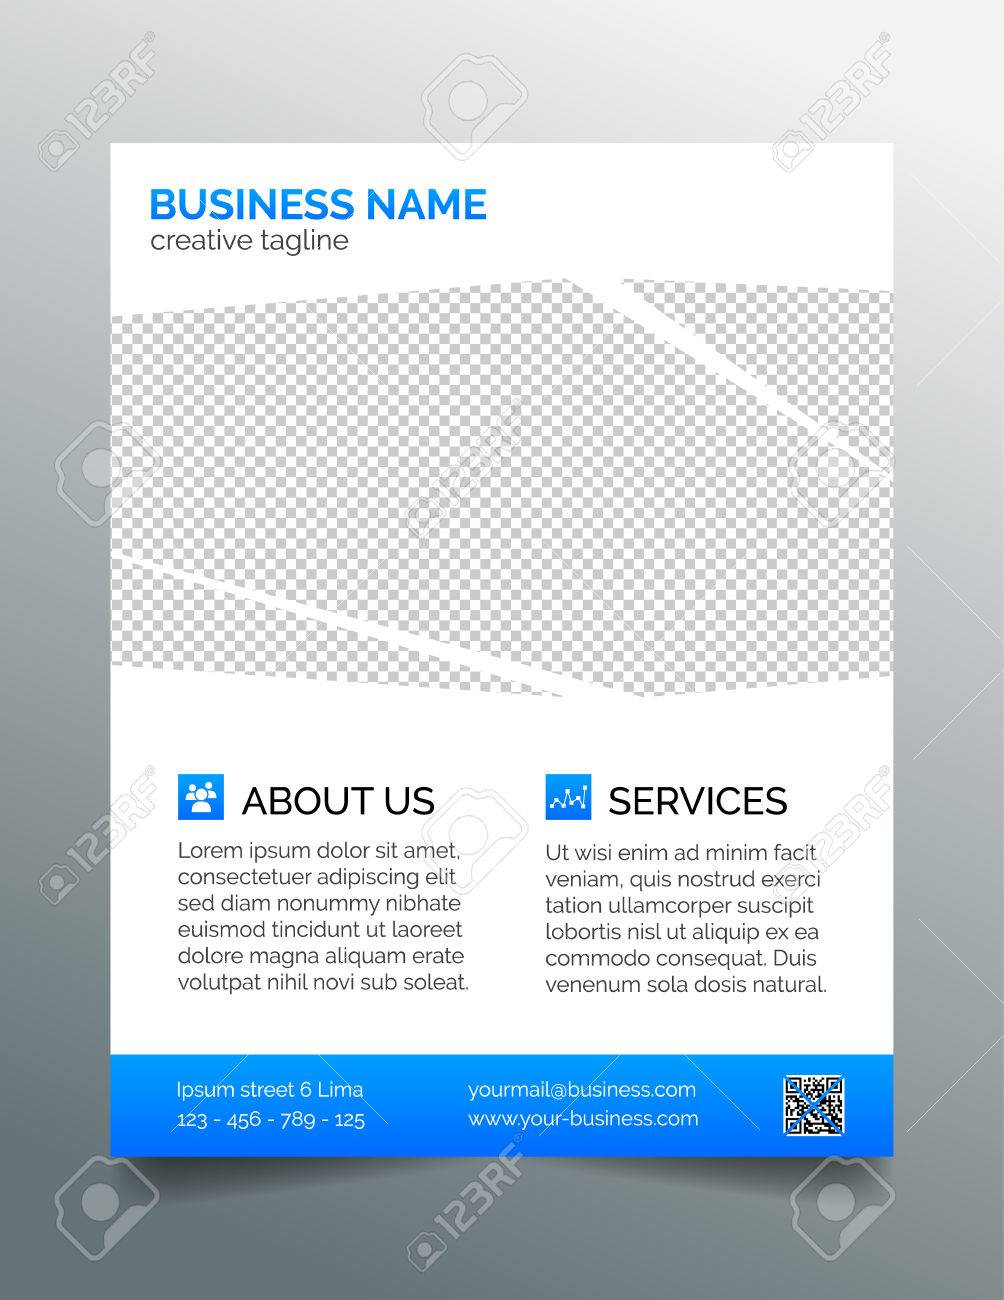 Corporate Business Flyer Template Light Blue Design Royalty Free